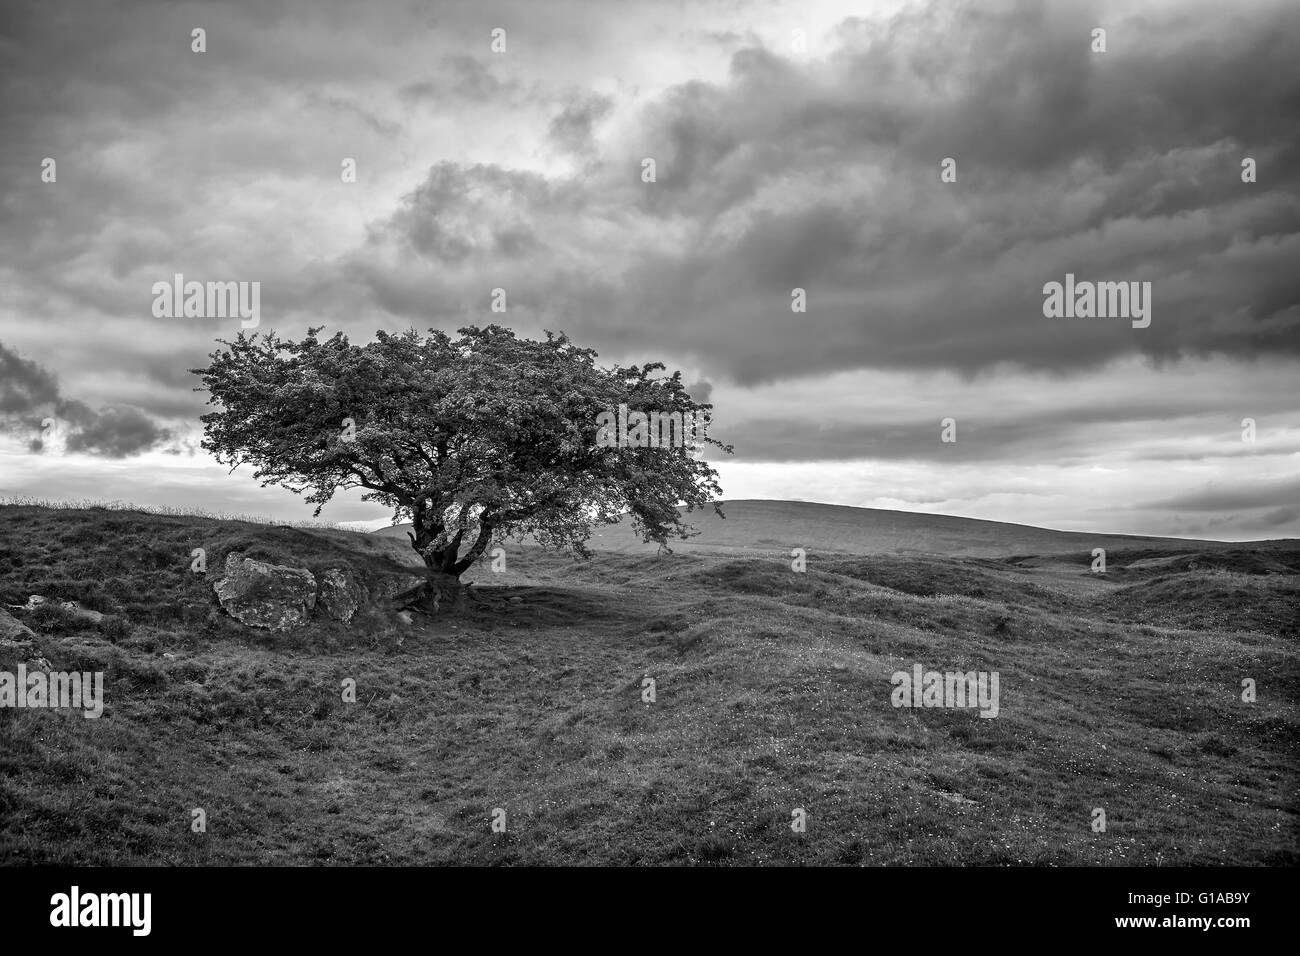 Lone tree in stormy weather on Grin Low, above Buxton, Derbyshire, England - Stock Image